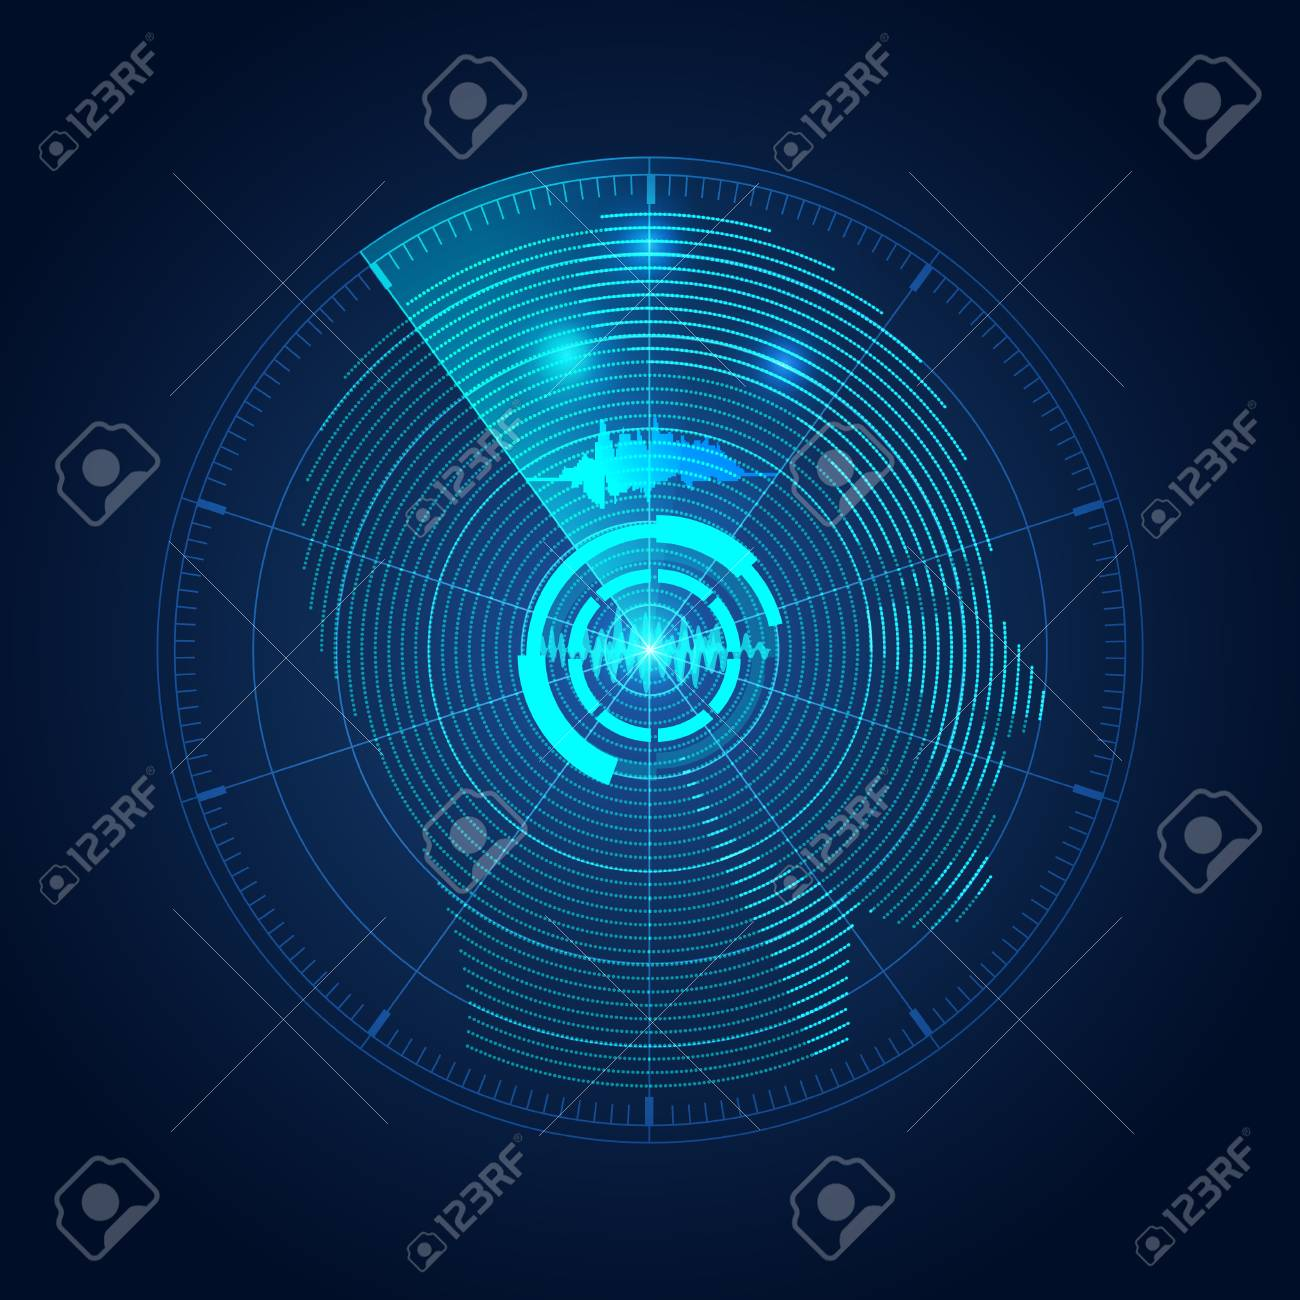 concept of mind control, radar screen searching for brain signal - 83963674